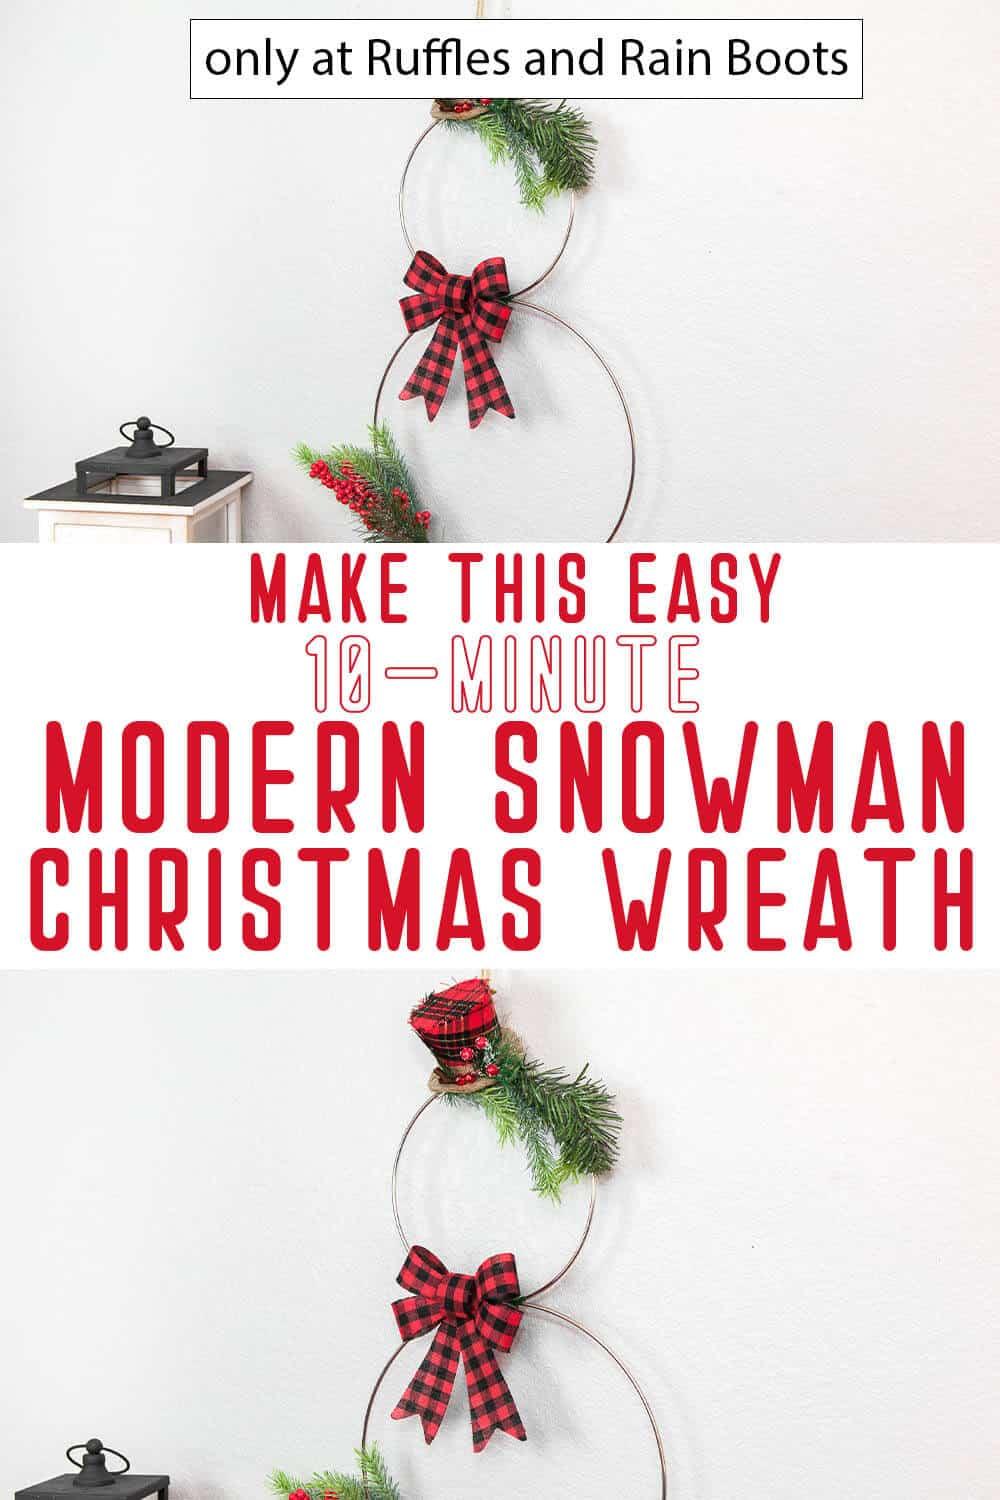 photo collage of modern christmas wreath snowman with text which reads make this easy 10-minute modern snowman christmas wreath